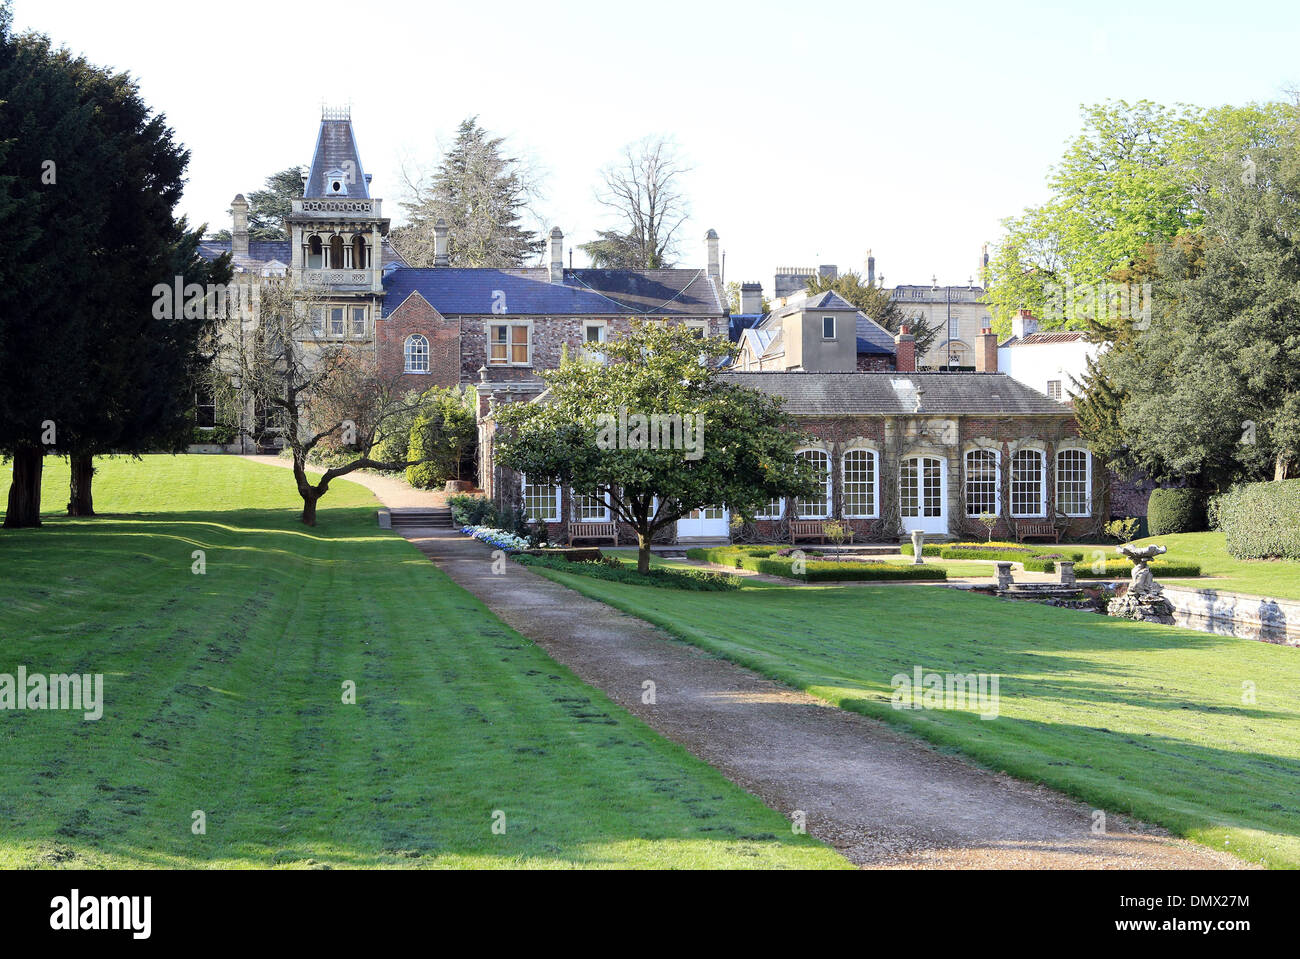 Goldney Hall in Clifton, Bristol. - Stock Image